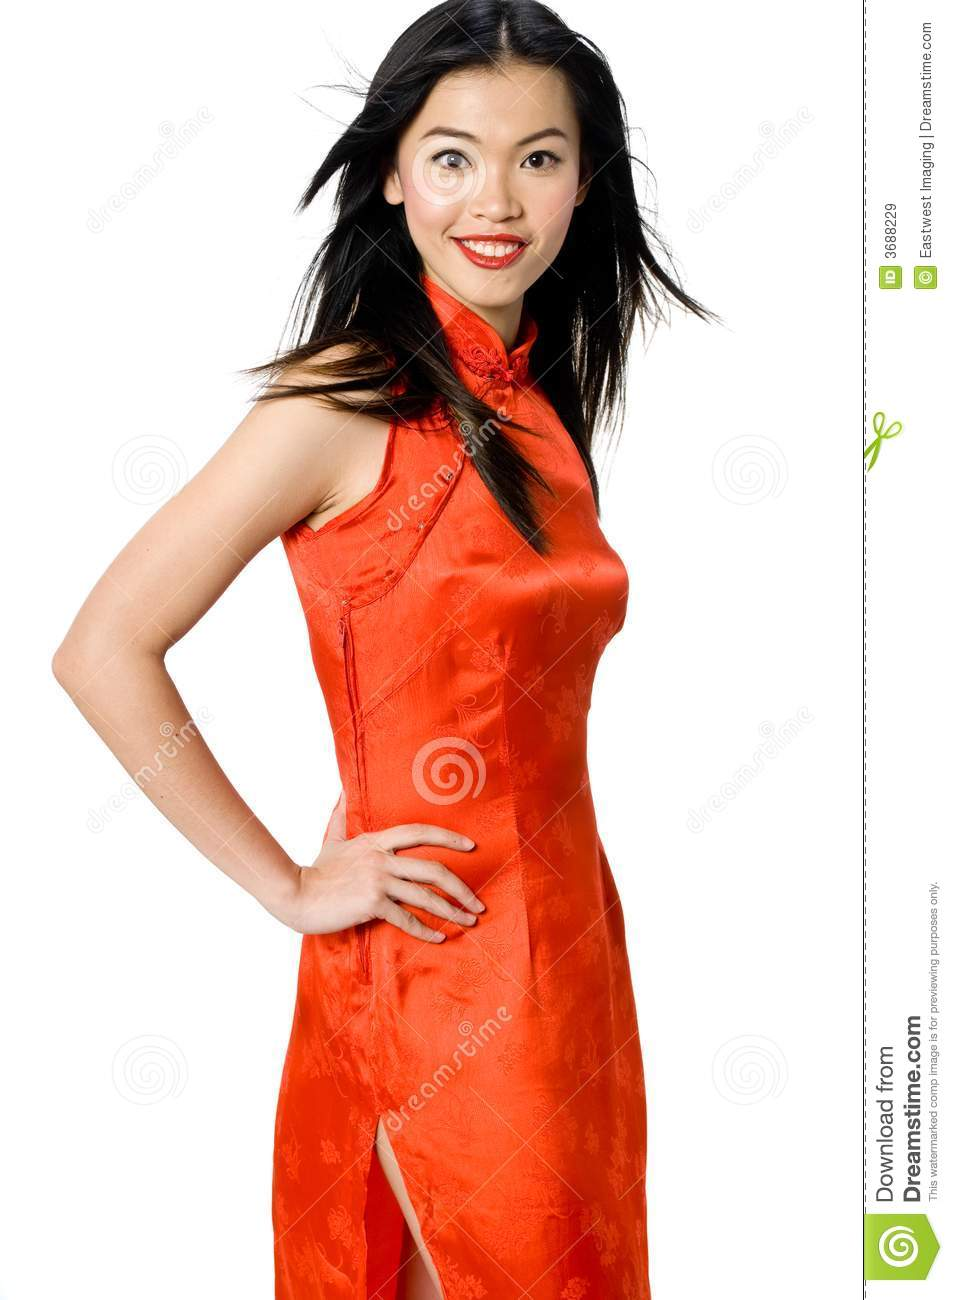 Chinese Gown stock image. Image of pose, asian, pretty - 3688229